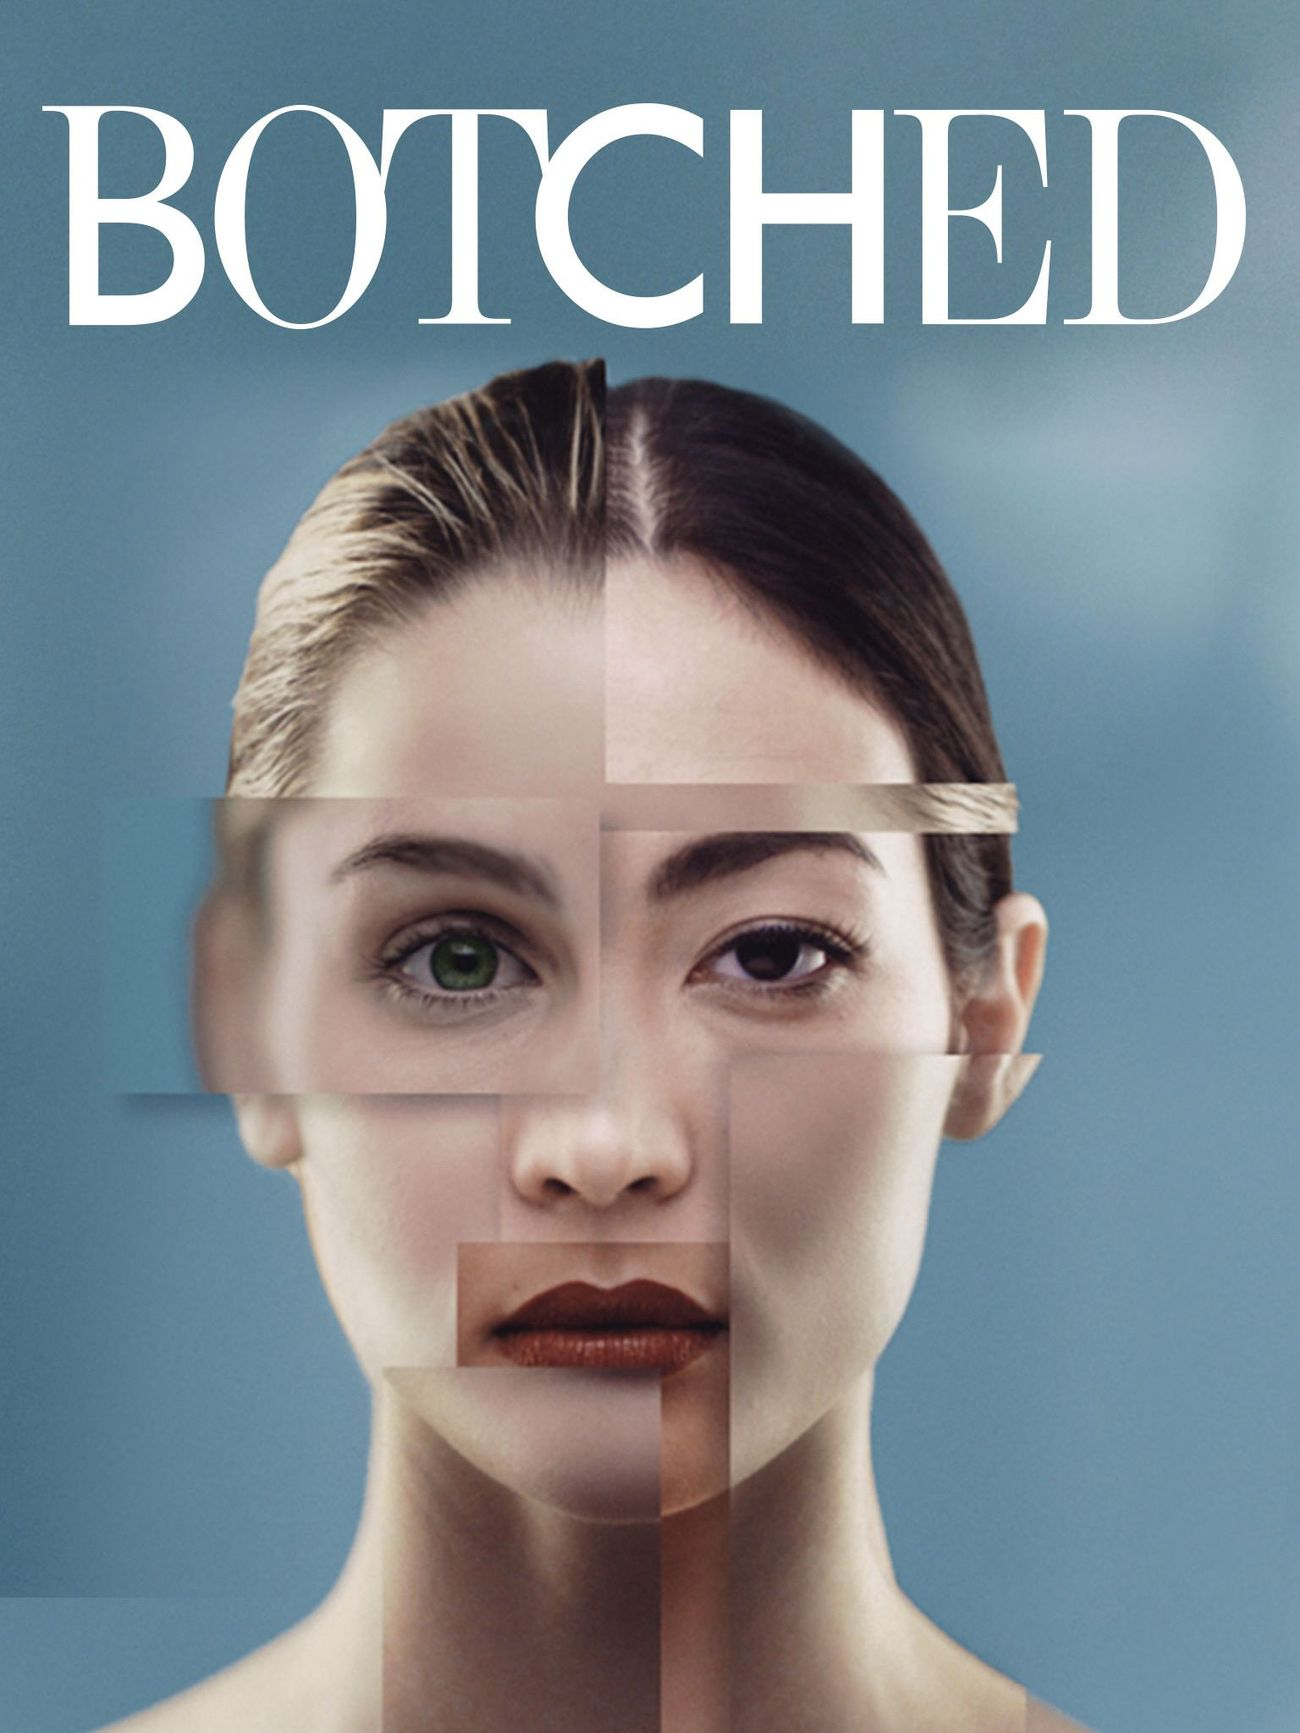 Botched - Season 5 Episode 12 - Breast Lumps and Empty Noses